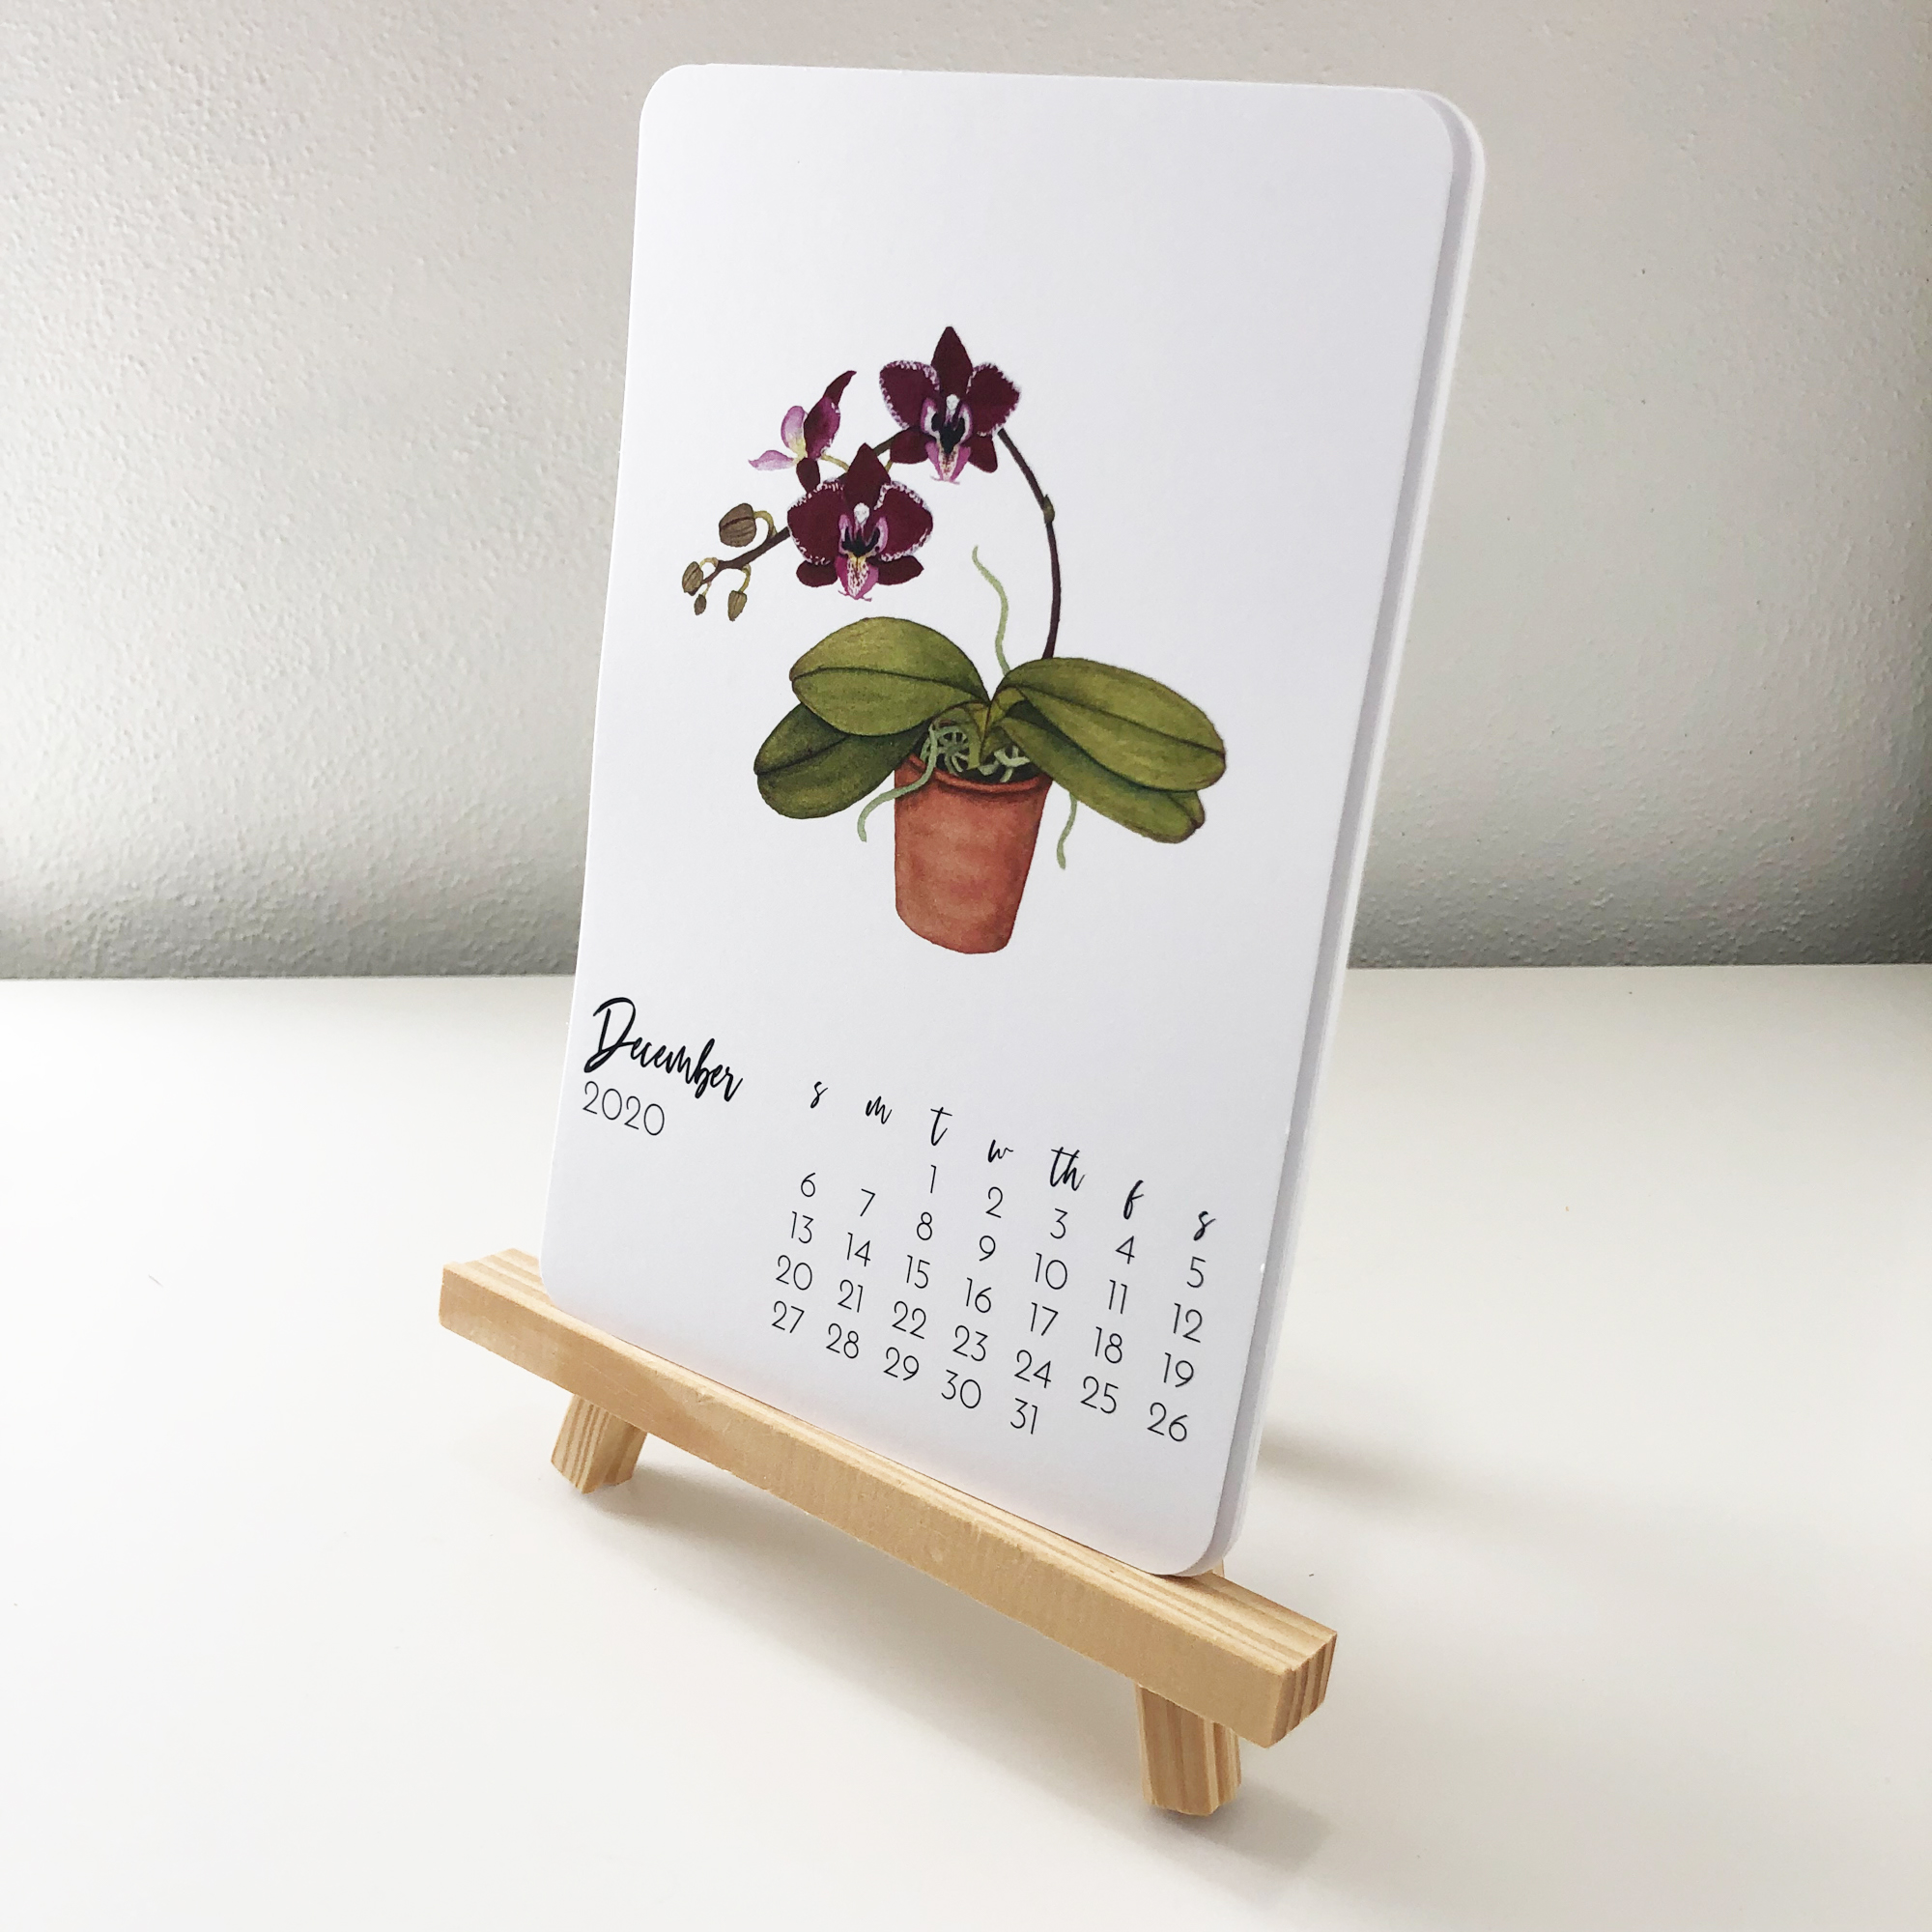 2020 Botanical Watercolor Desk Calendars by Anne Butera Are Also Available With Rounded Corners